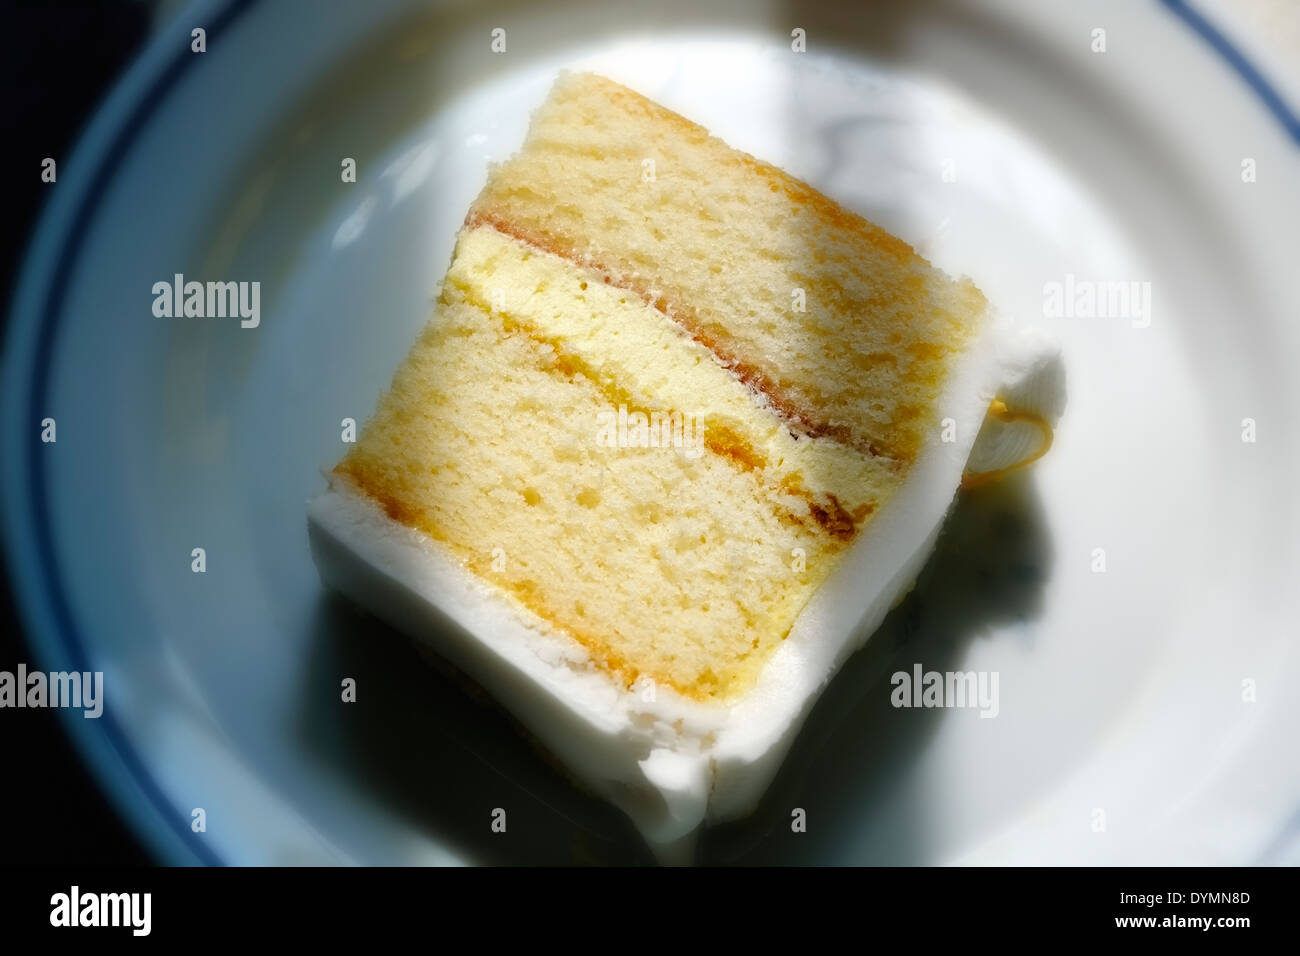 A Portion Of Birthday Cake Sponge With Jam And Cream Filling Stock